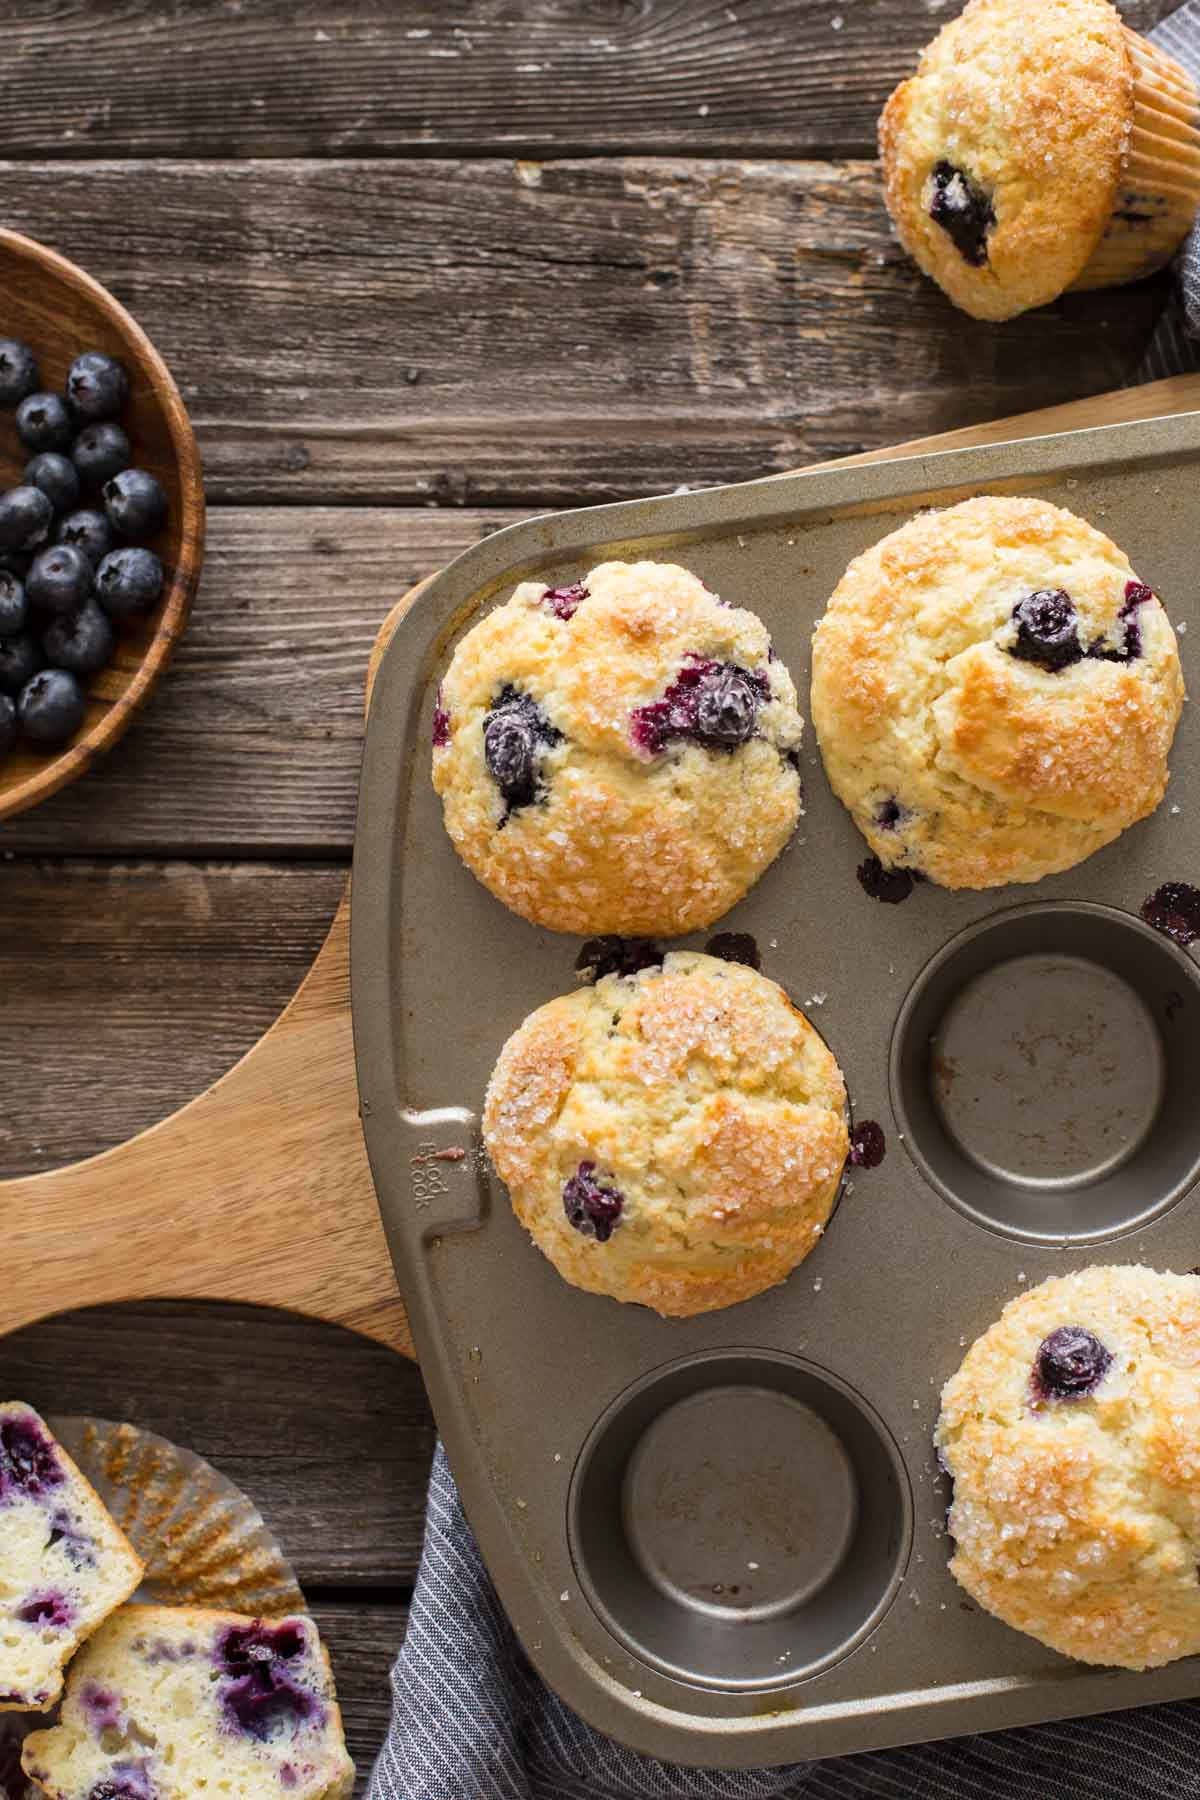 Best Ever Buttermilk Blueberry Muffins in a muffin pan on a wooden backboard with a bowl of fresh blueberries.